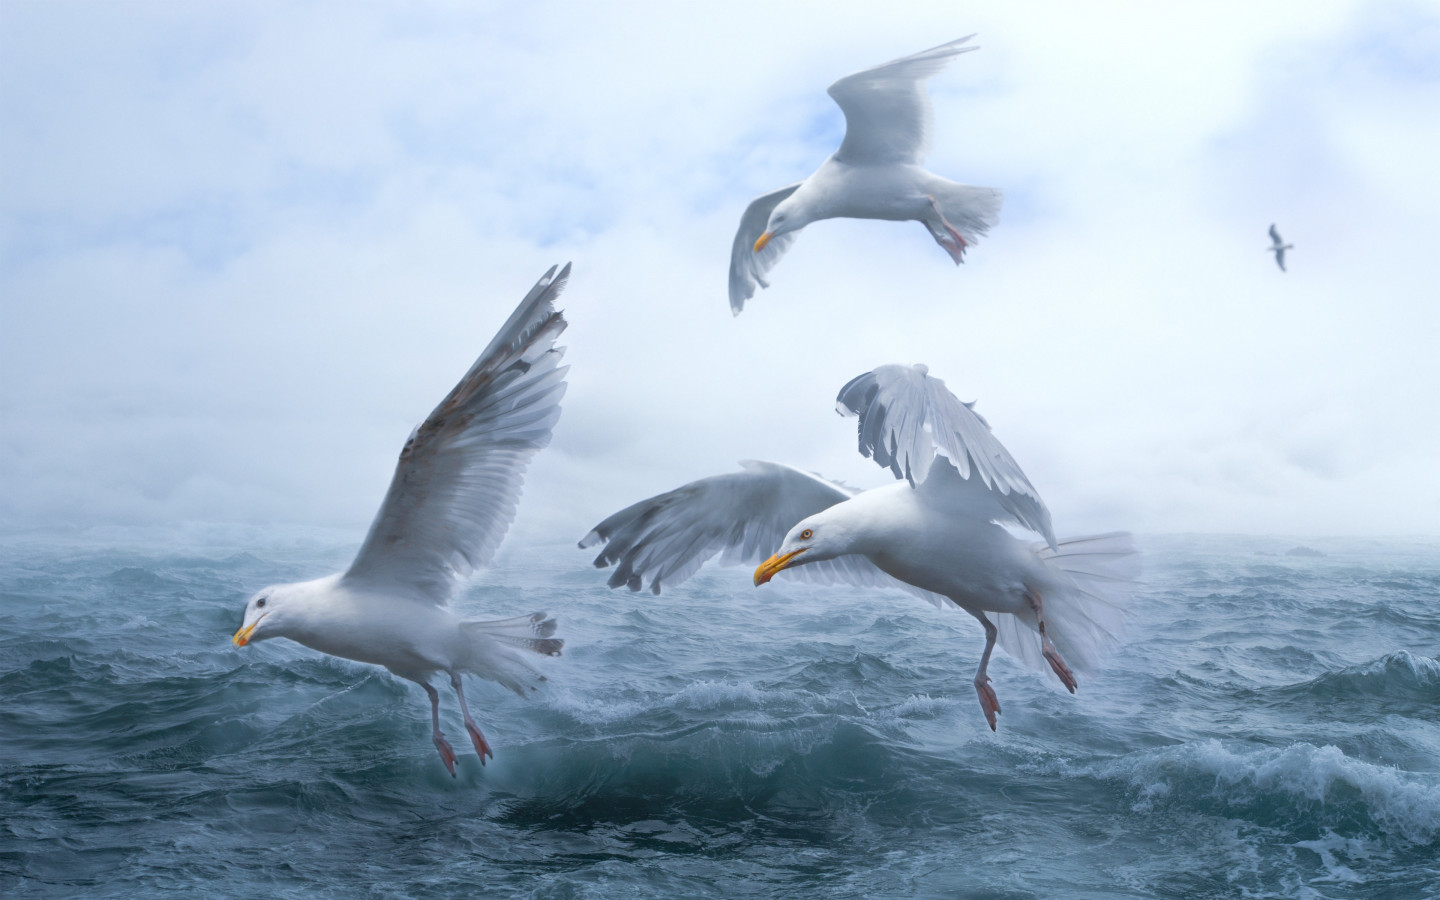 Seagulls above sea waves wallpaper 1440x900